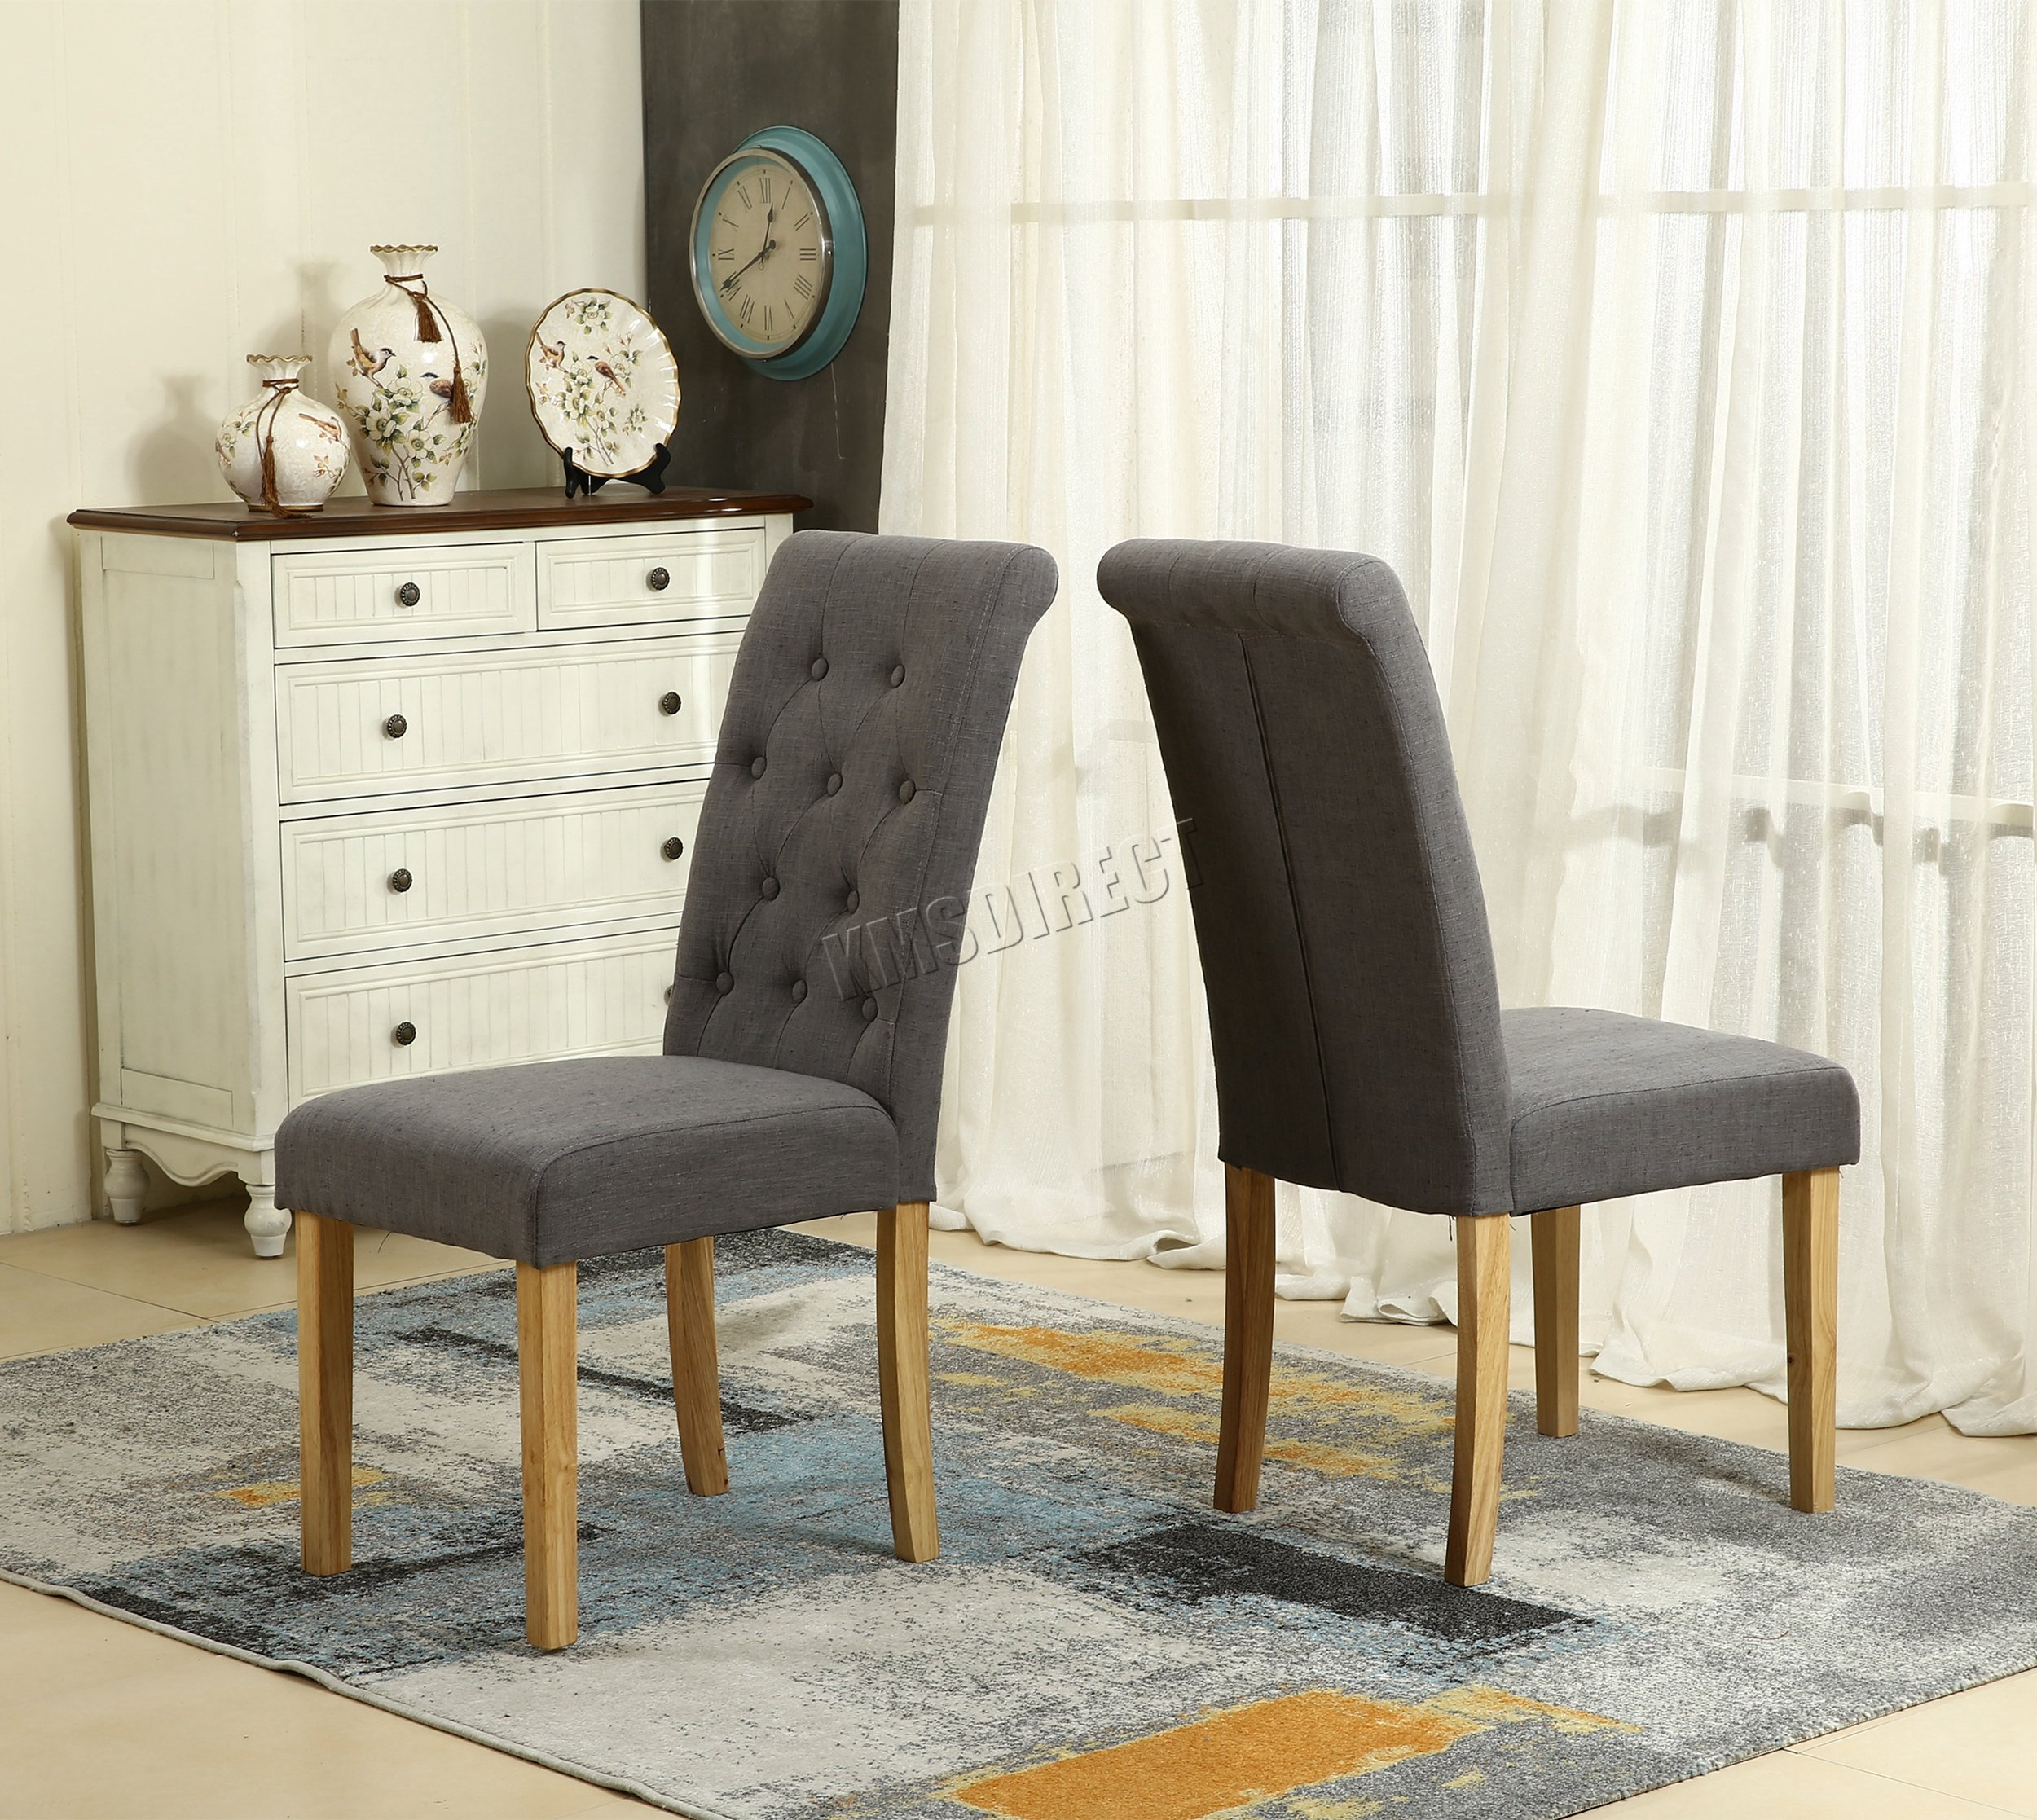 Home dining dining chairs